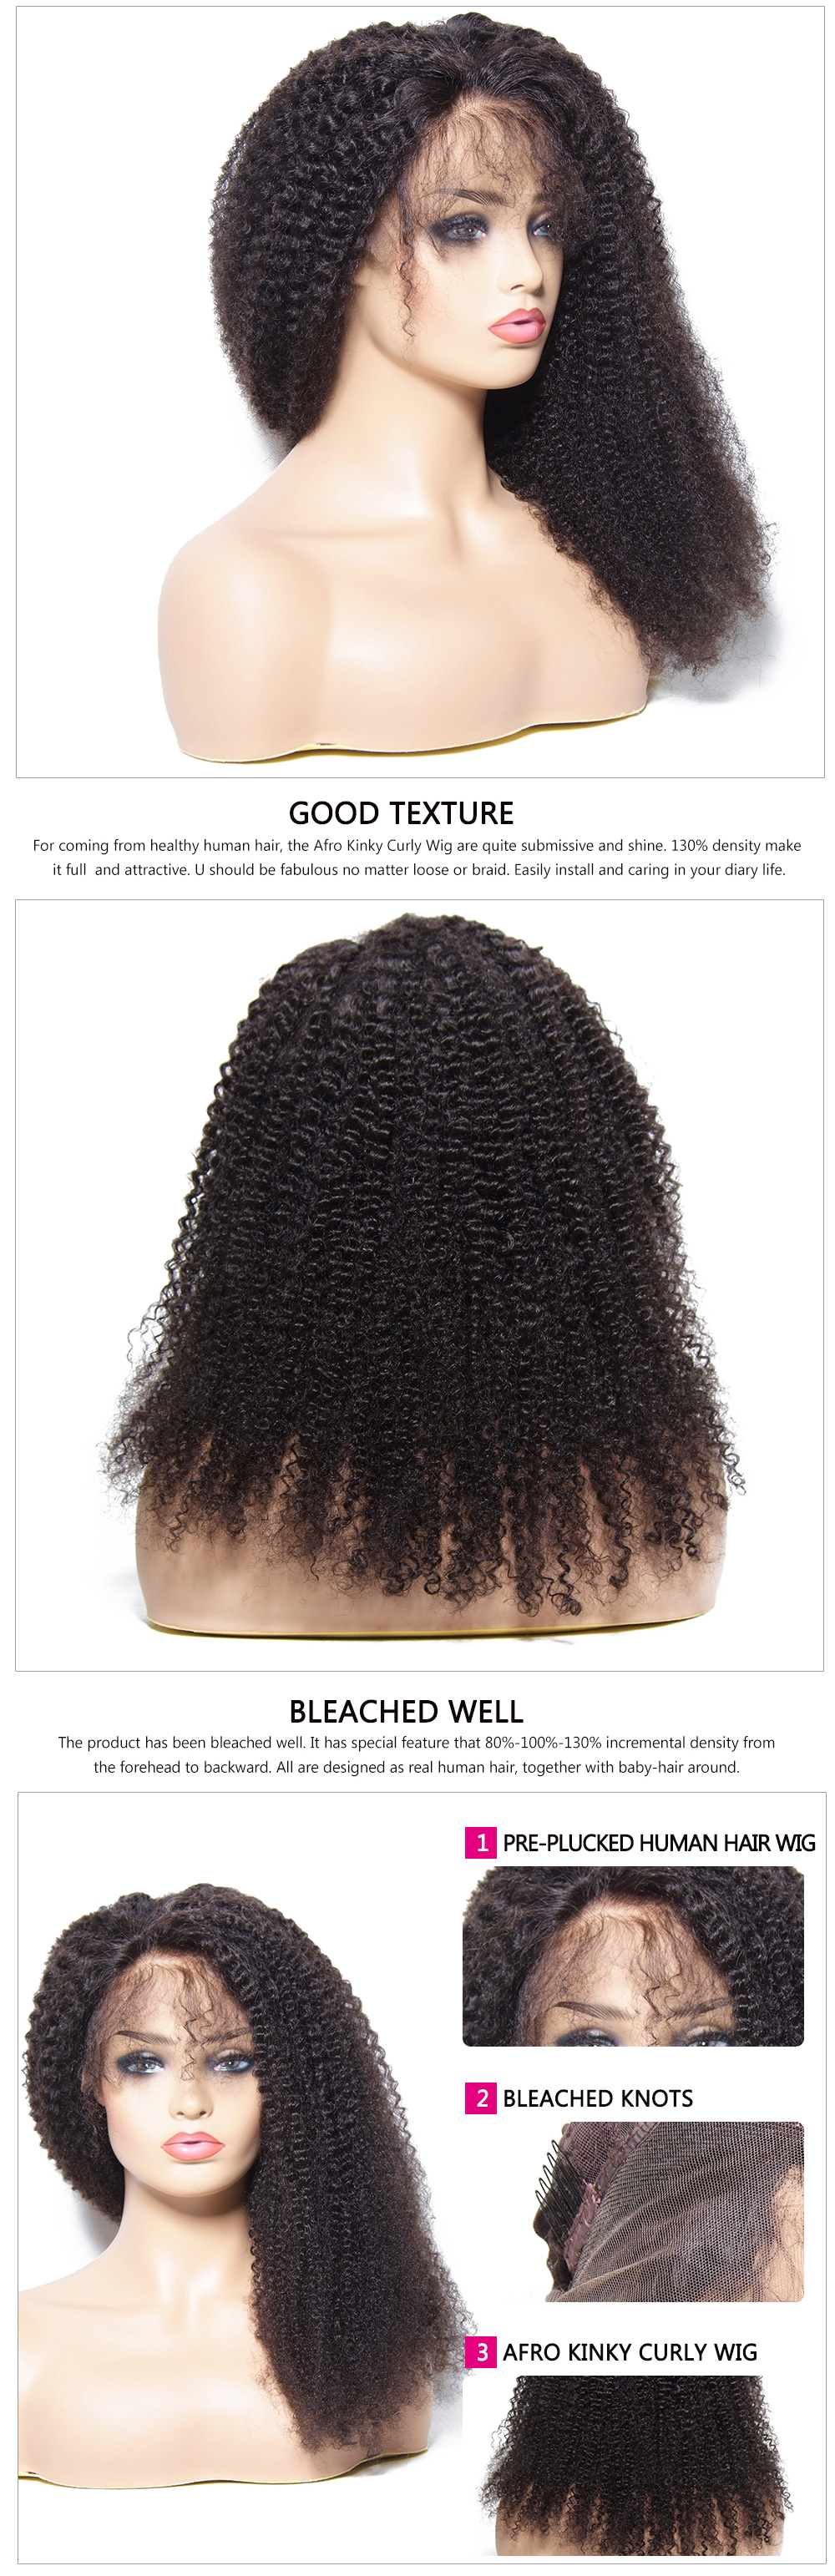 Afro Kinky Curly Human Hair Wigs